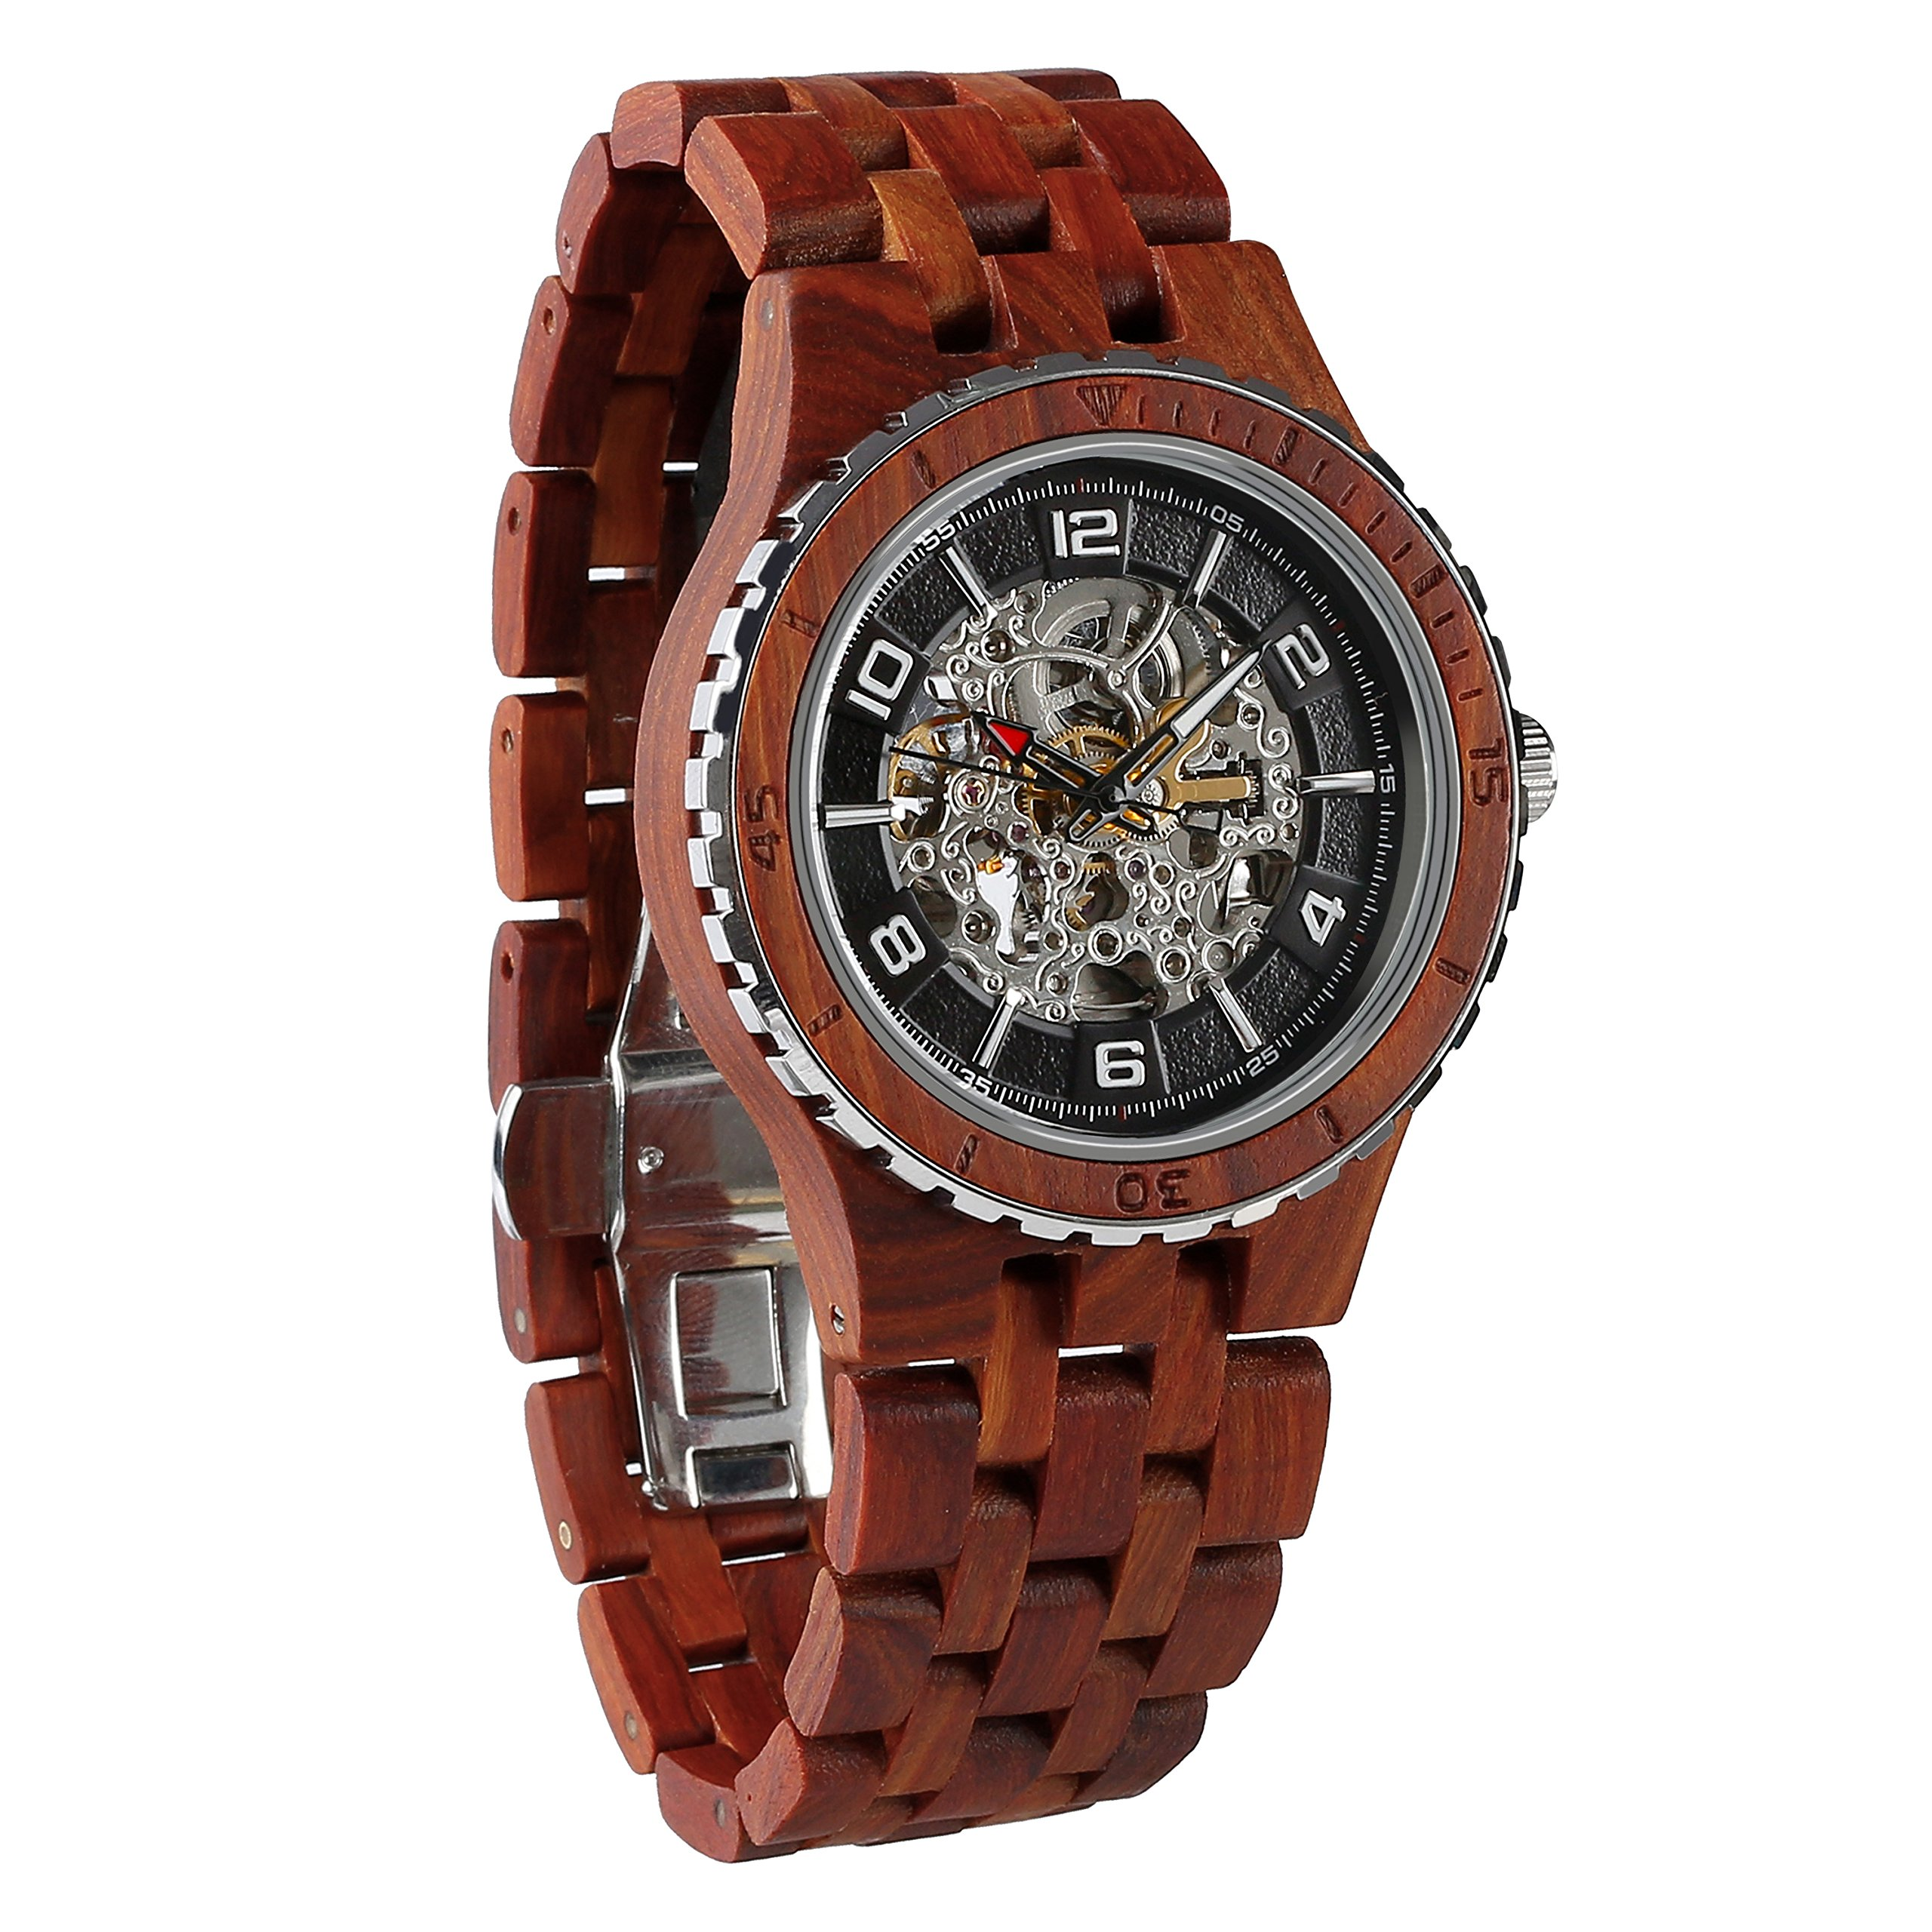 Wilds Wood Watches Premium Eco Self-Winding Wooden Wrist Watch For Men, Natural Durable Handcrafted Gift Idea for Him (Rosewood) by Wilds (Image #1)